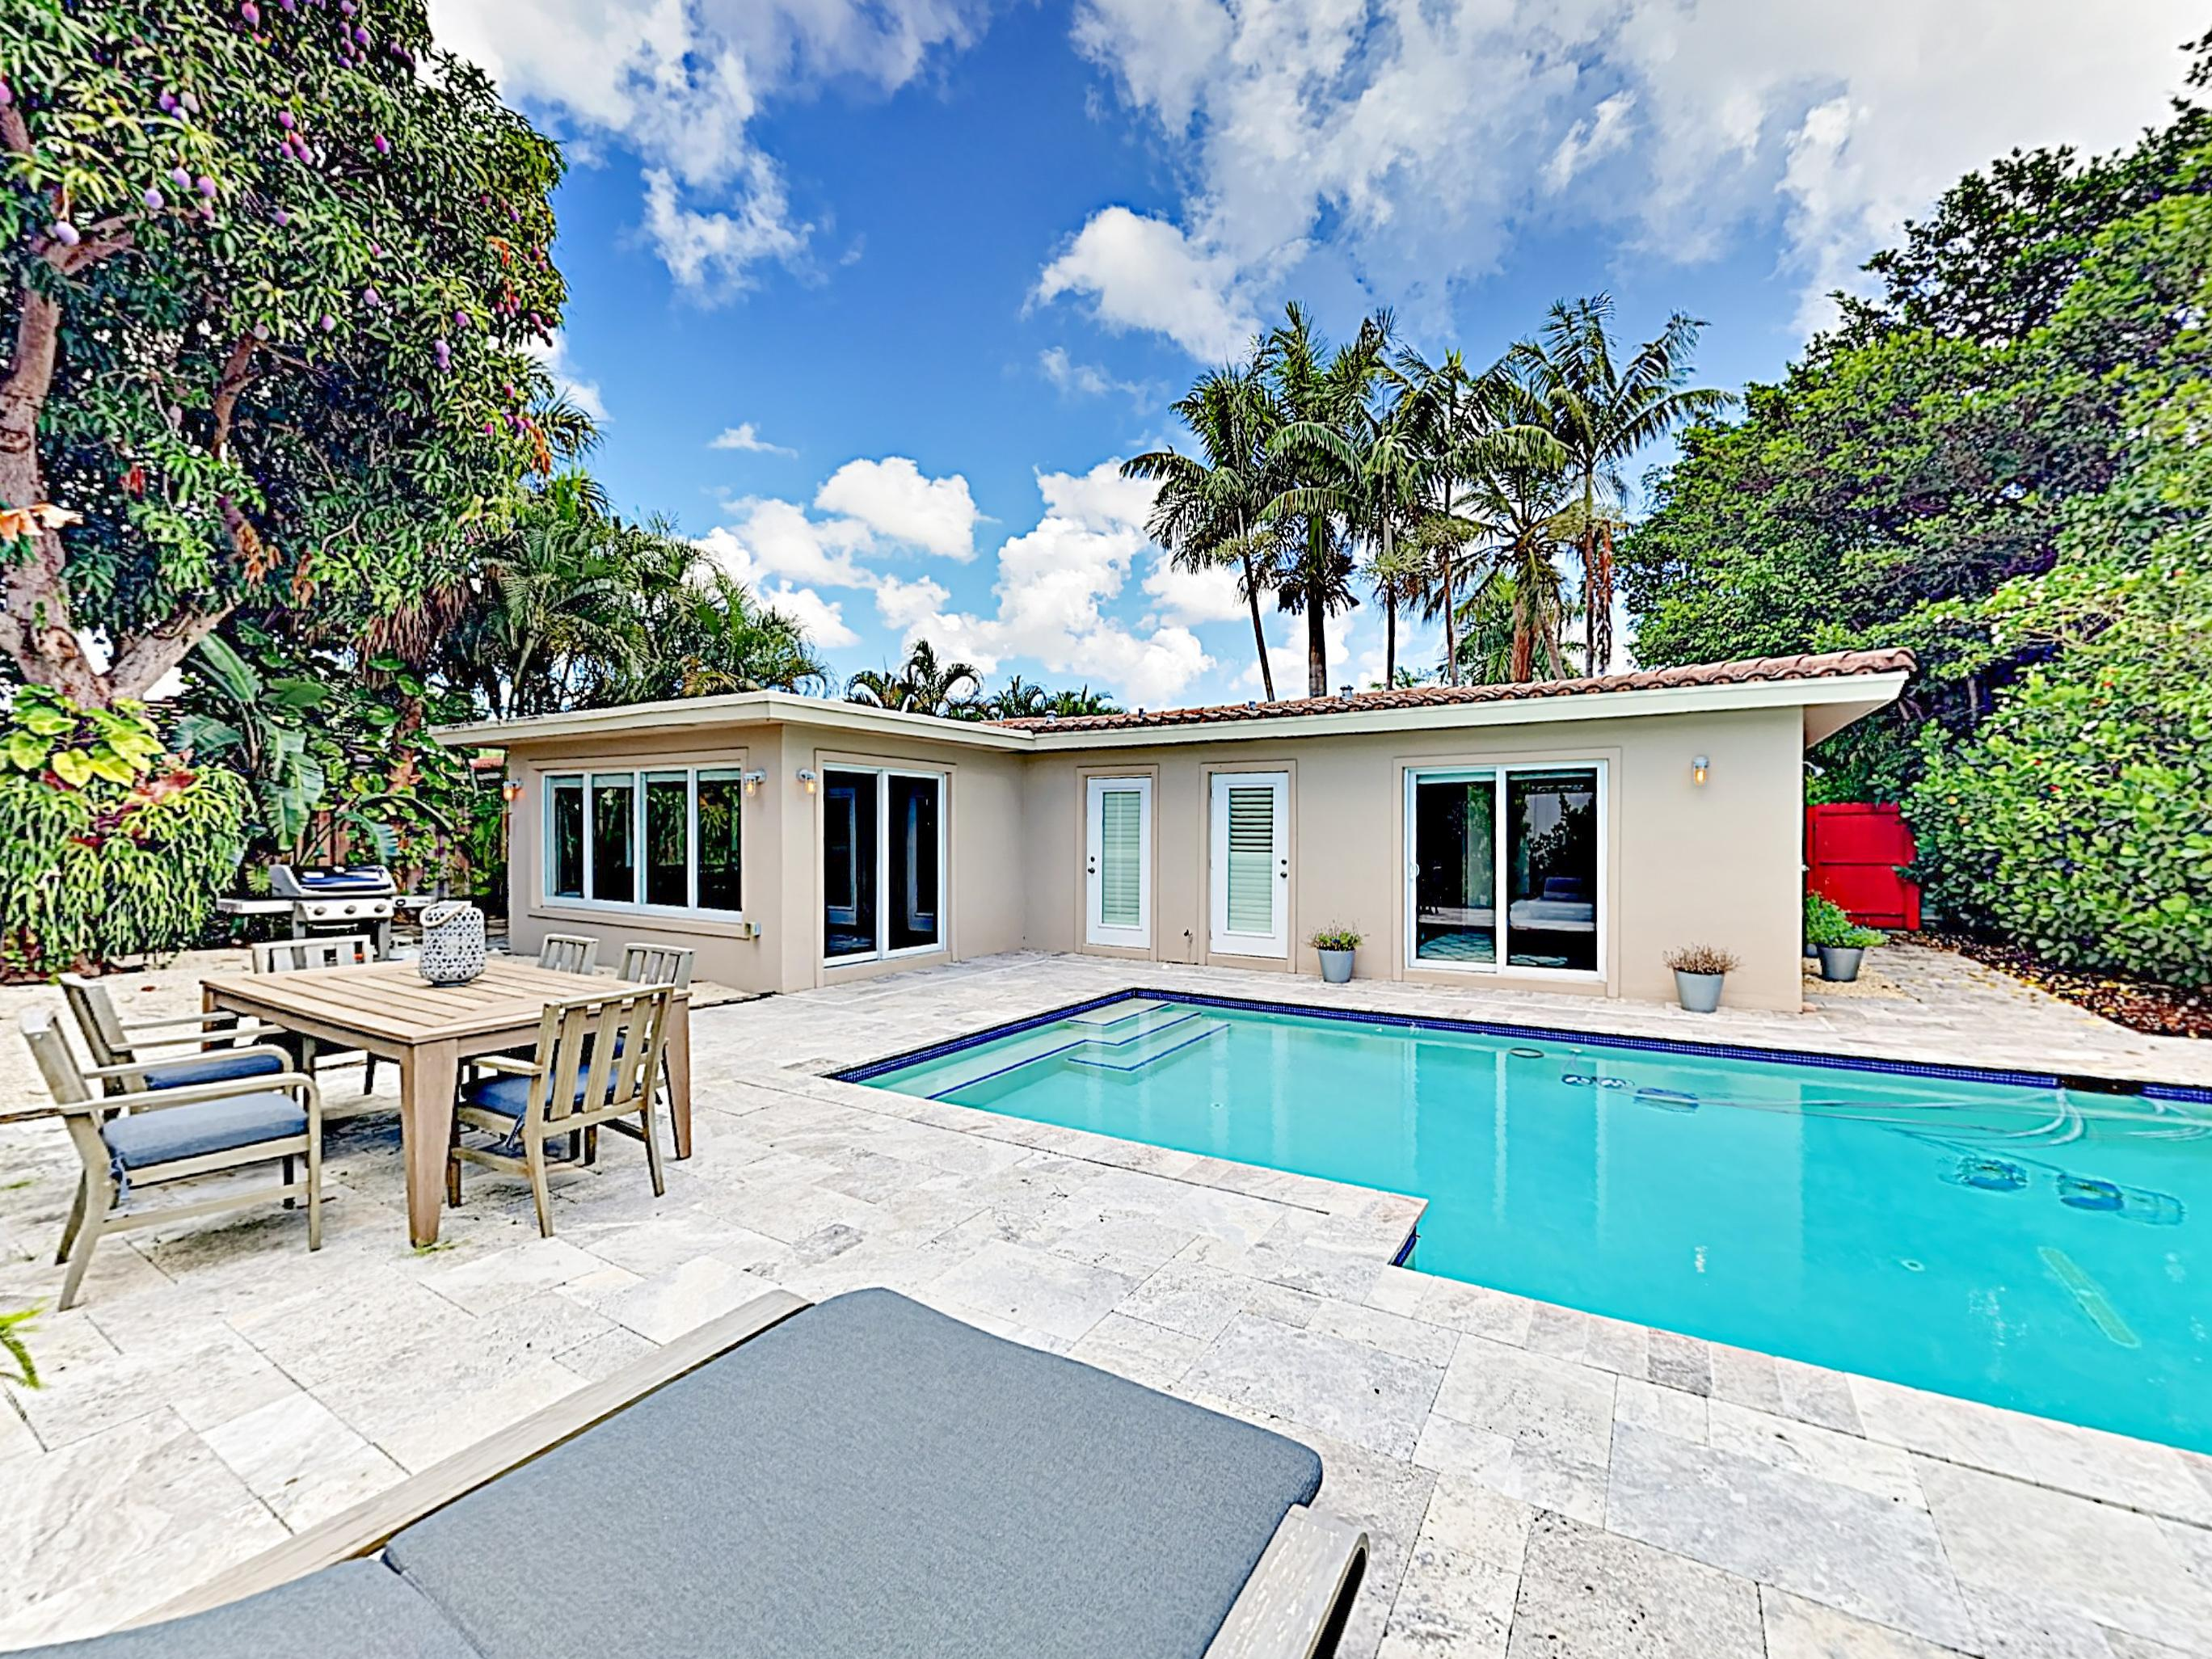 Welcome to Wilton Manors! This home is professionally managed by TurnKey Vacation Rentals.